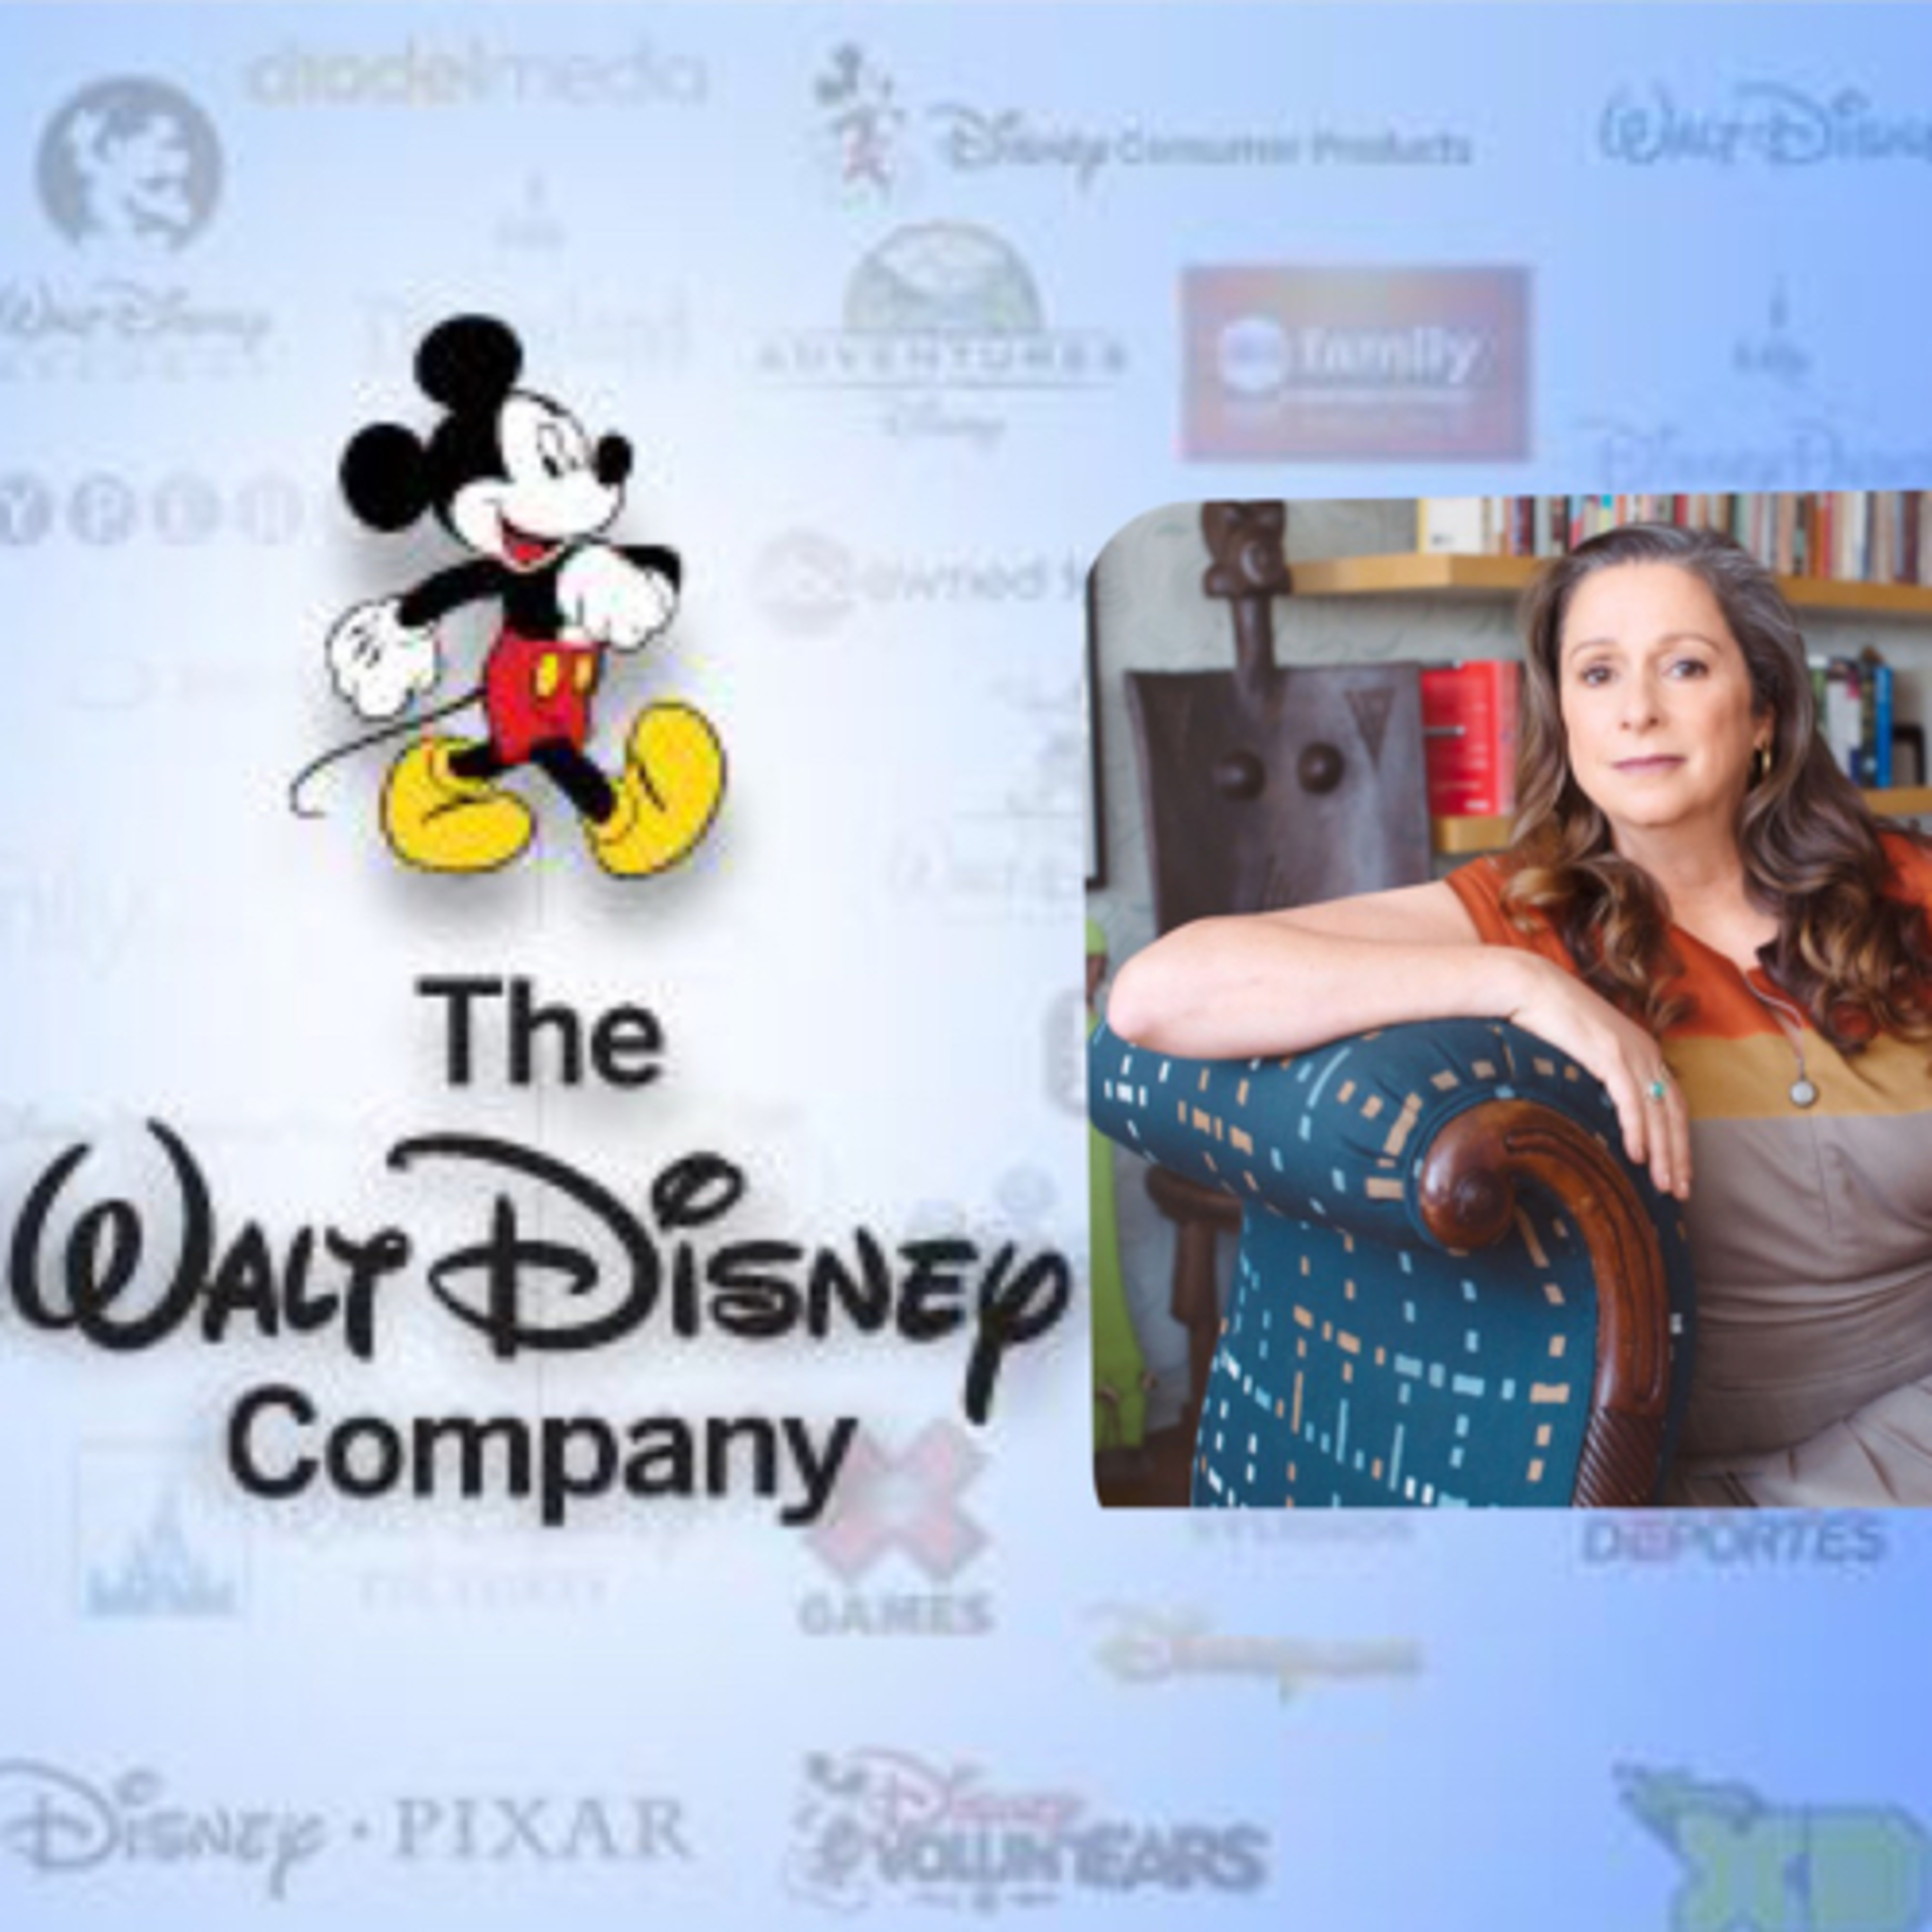 Episodes #390 & #391 - my commentary on Abigail Disney's thoughts about the company.